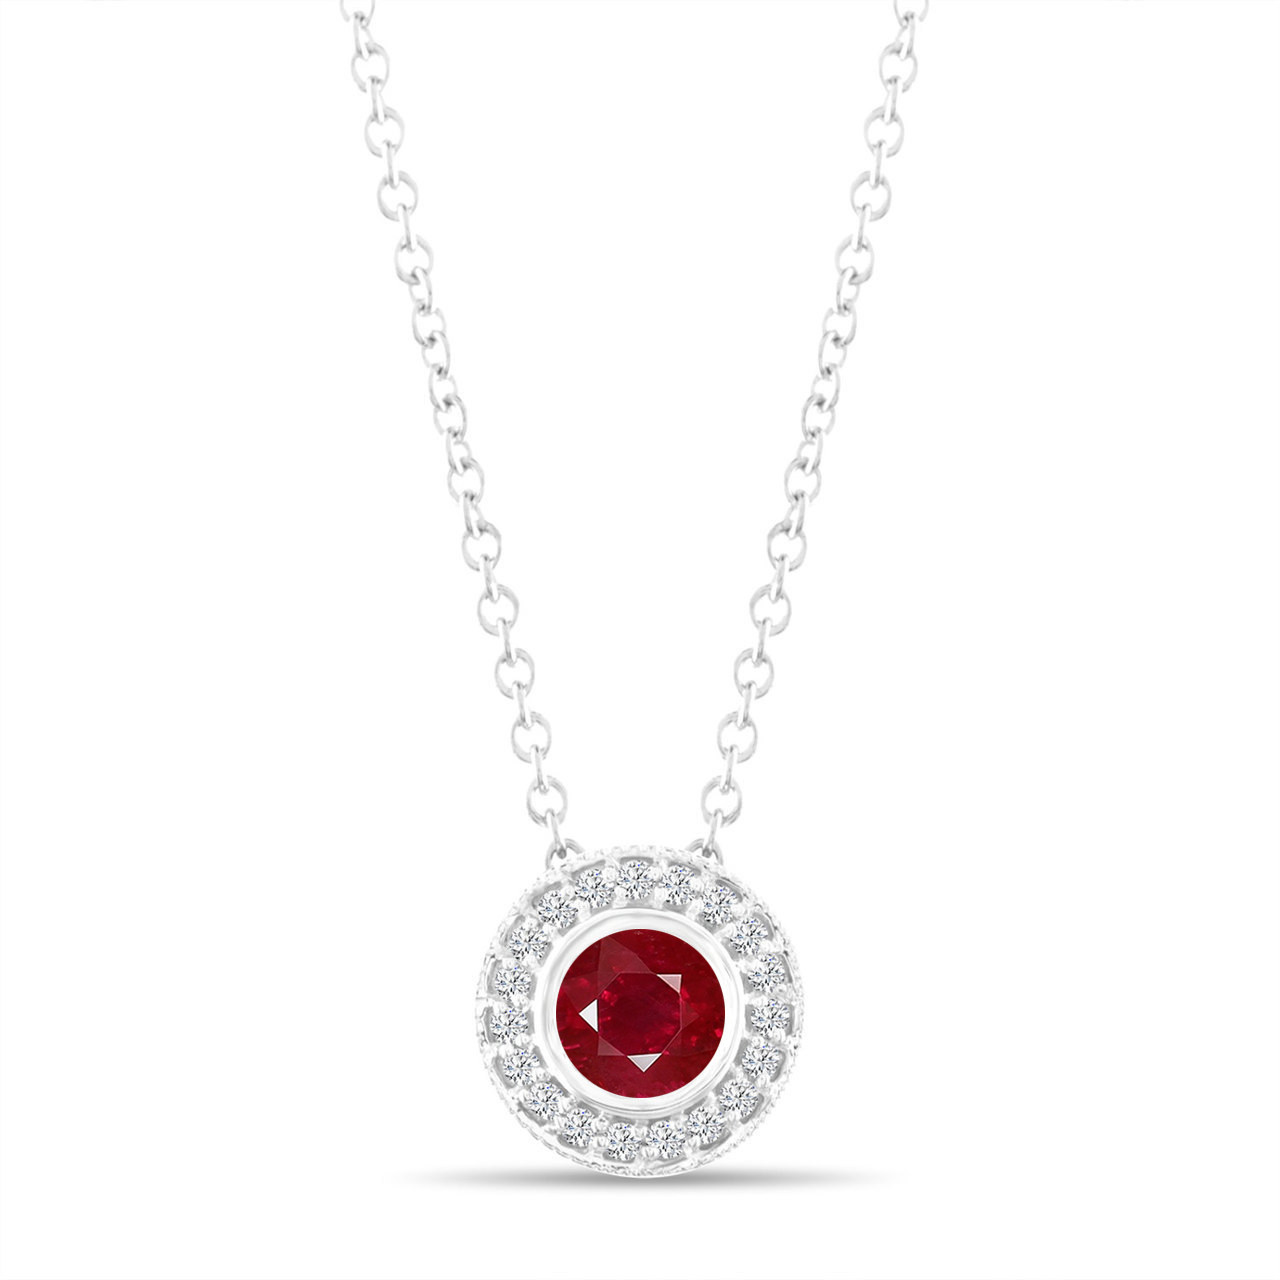 ruby necklace com jewelry dp set sets diamond with created heart silver amazon earrings and sterling pendant ring box